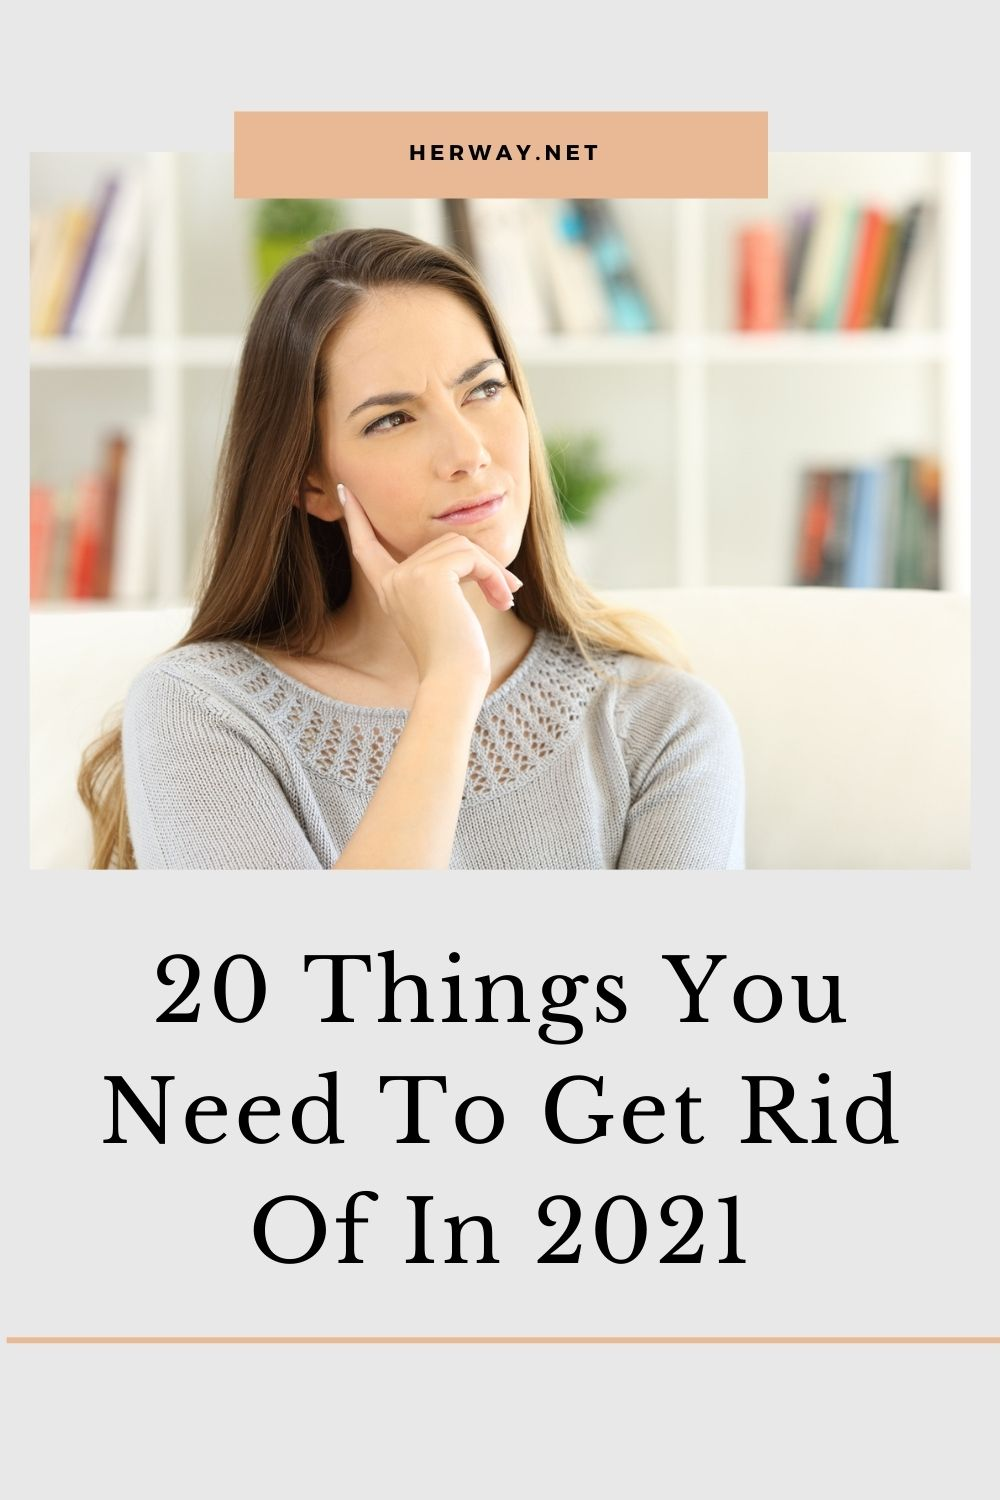 20 Things You Need To Get Rid Of In 2021